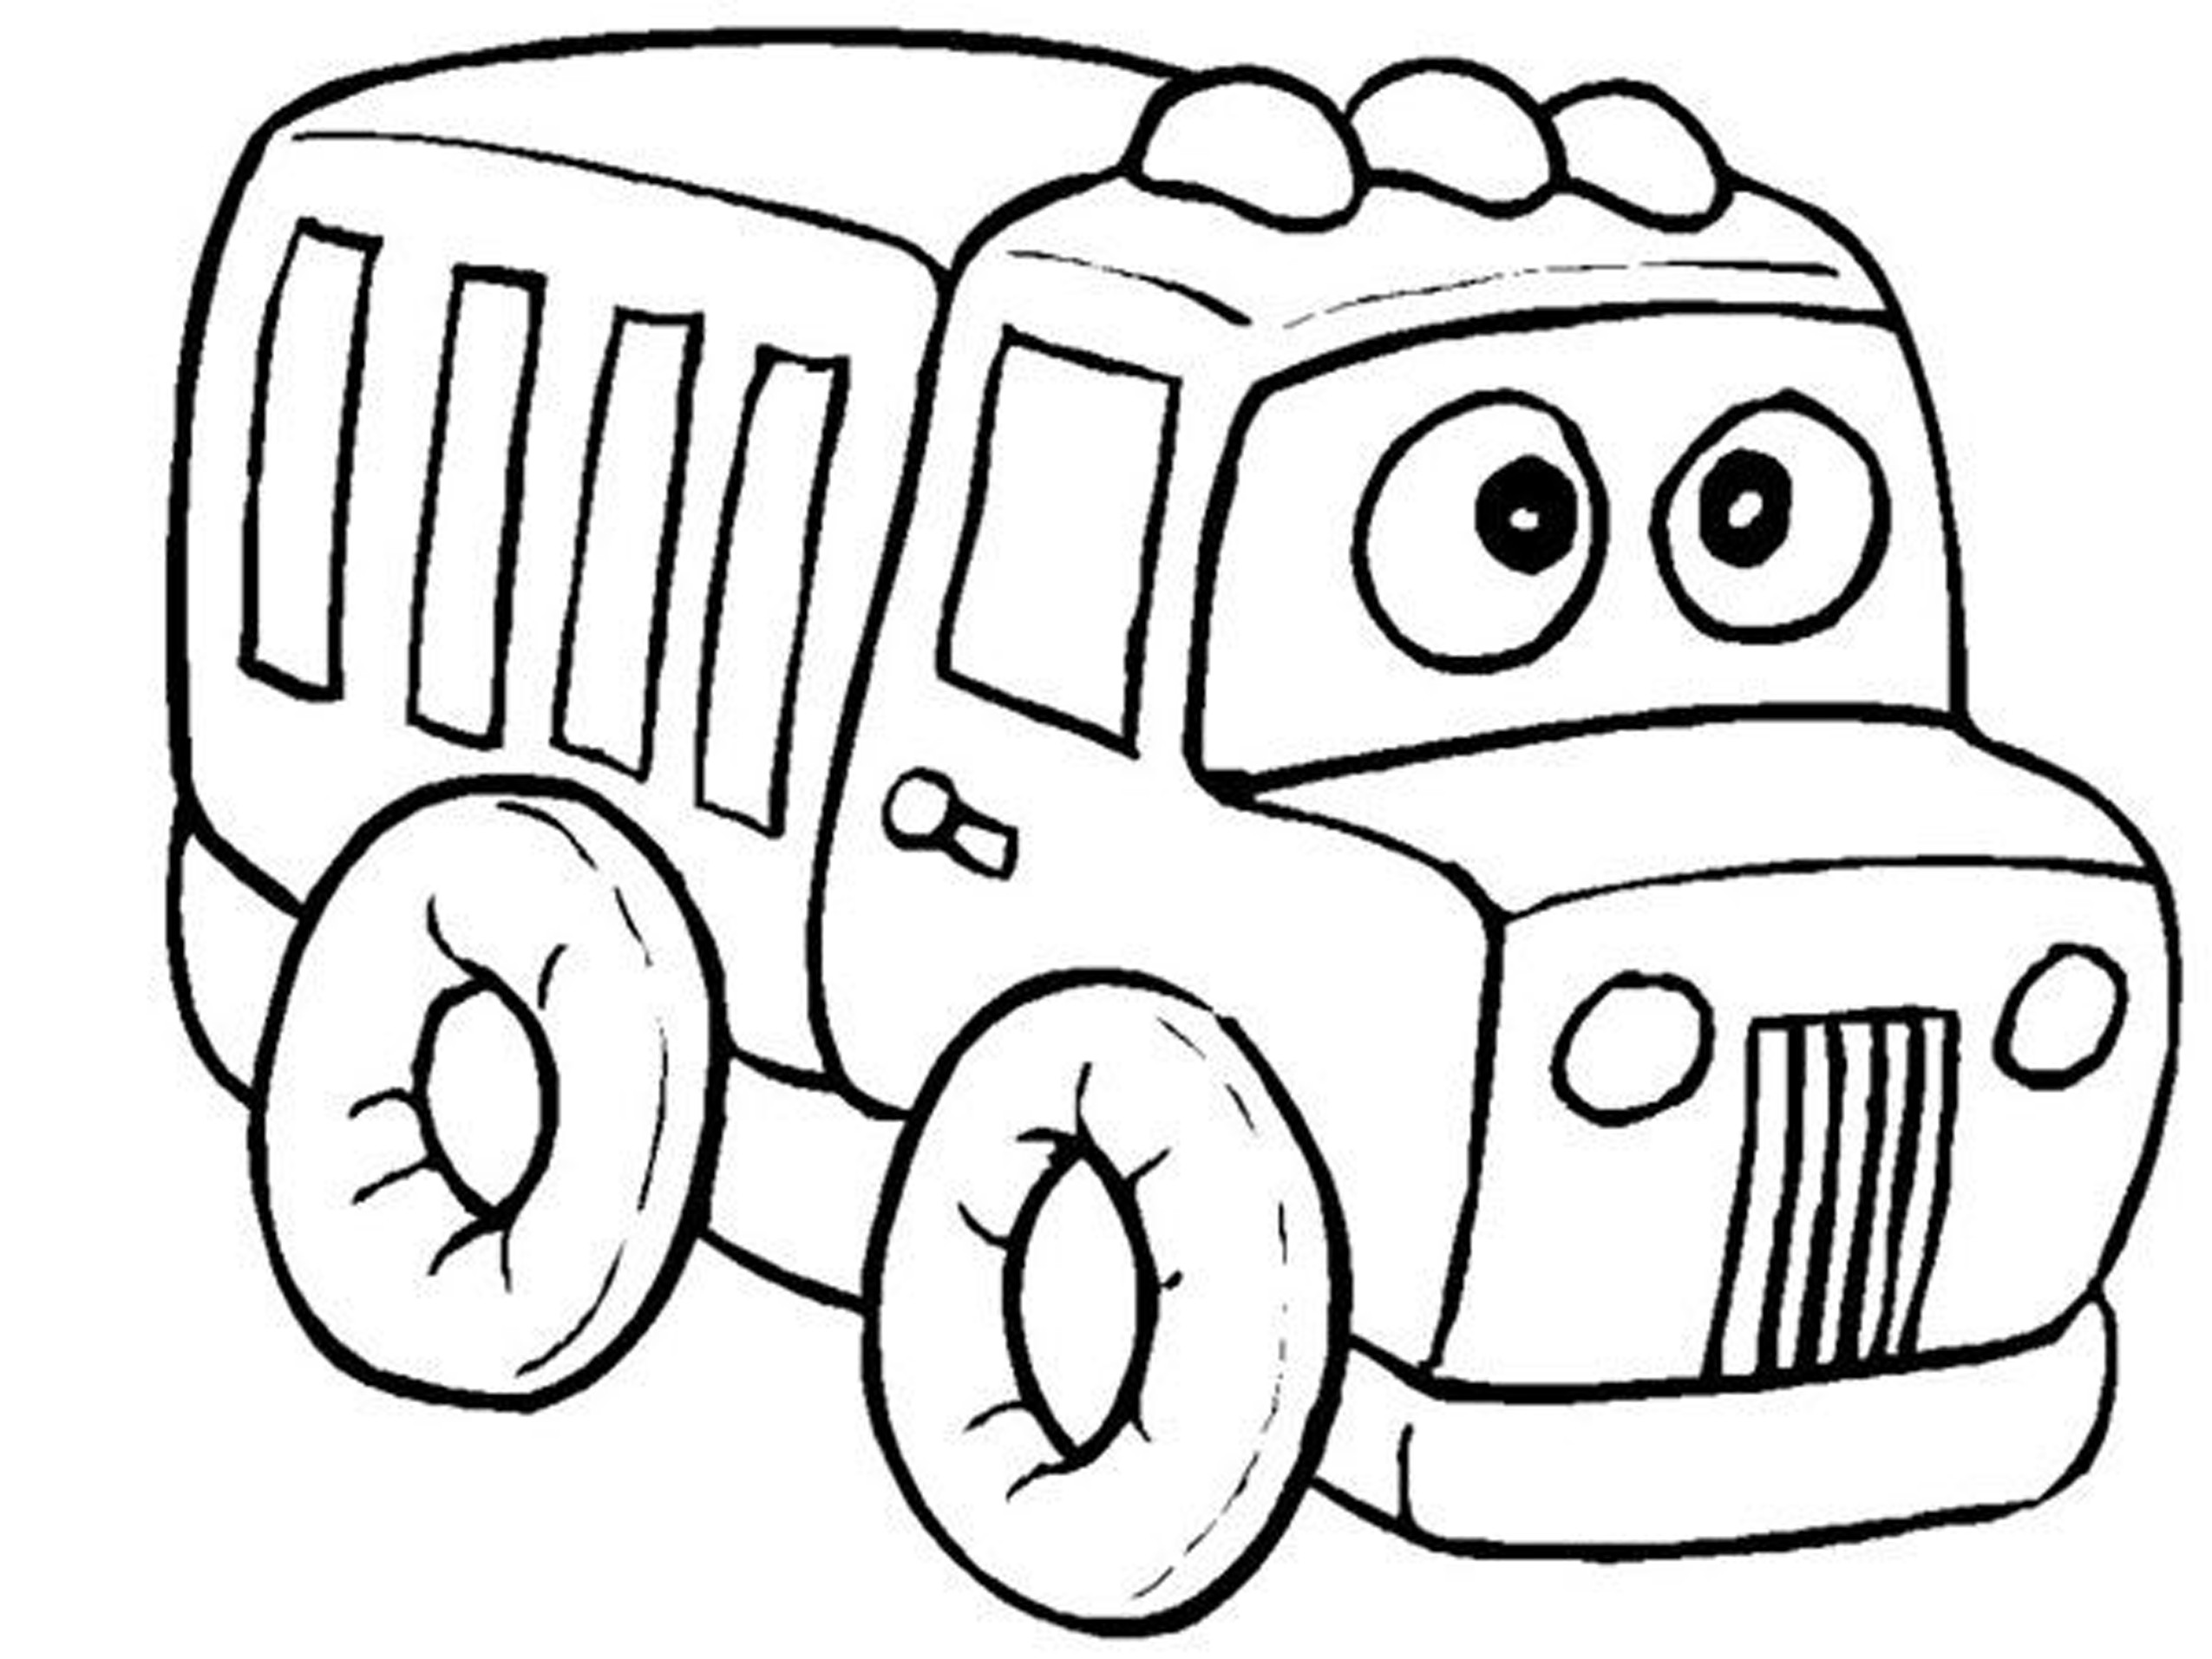 Little Boy Coloring Pages Printable at GetDrawings.com | Free for ...